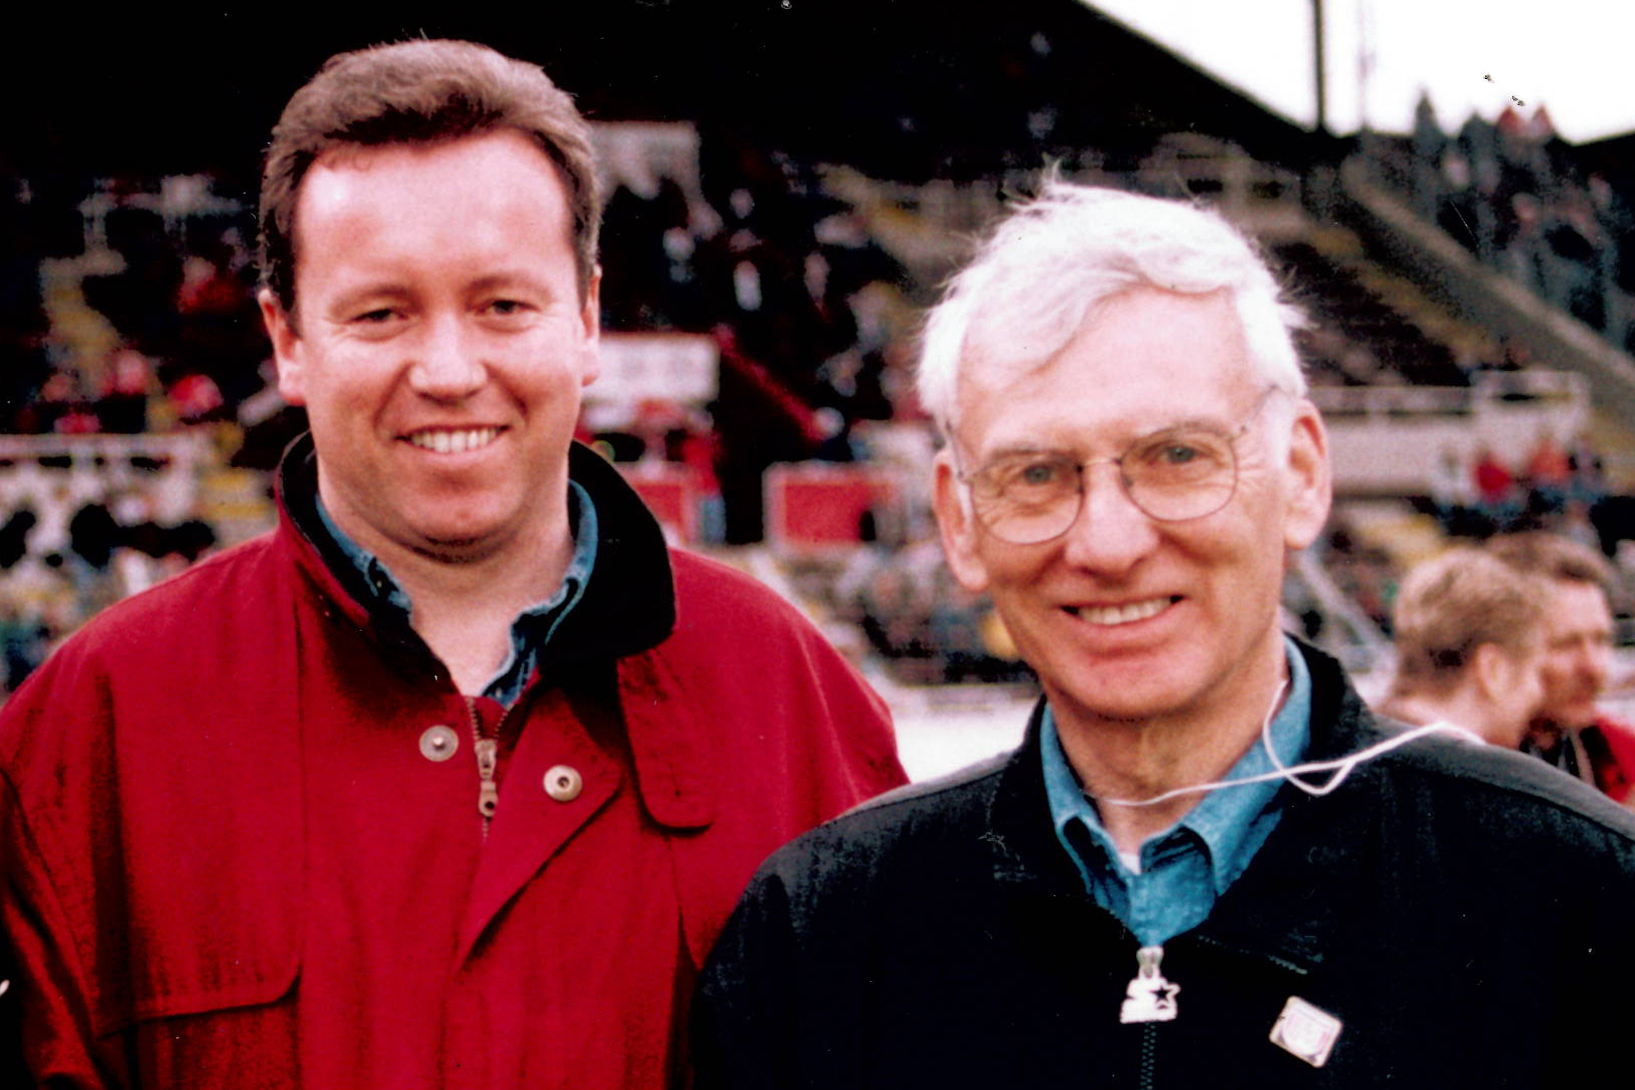 With Steelers' owner Dan Rooney.